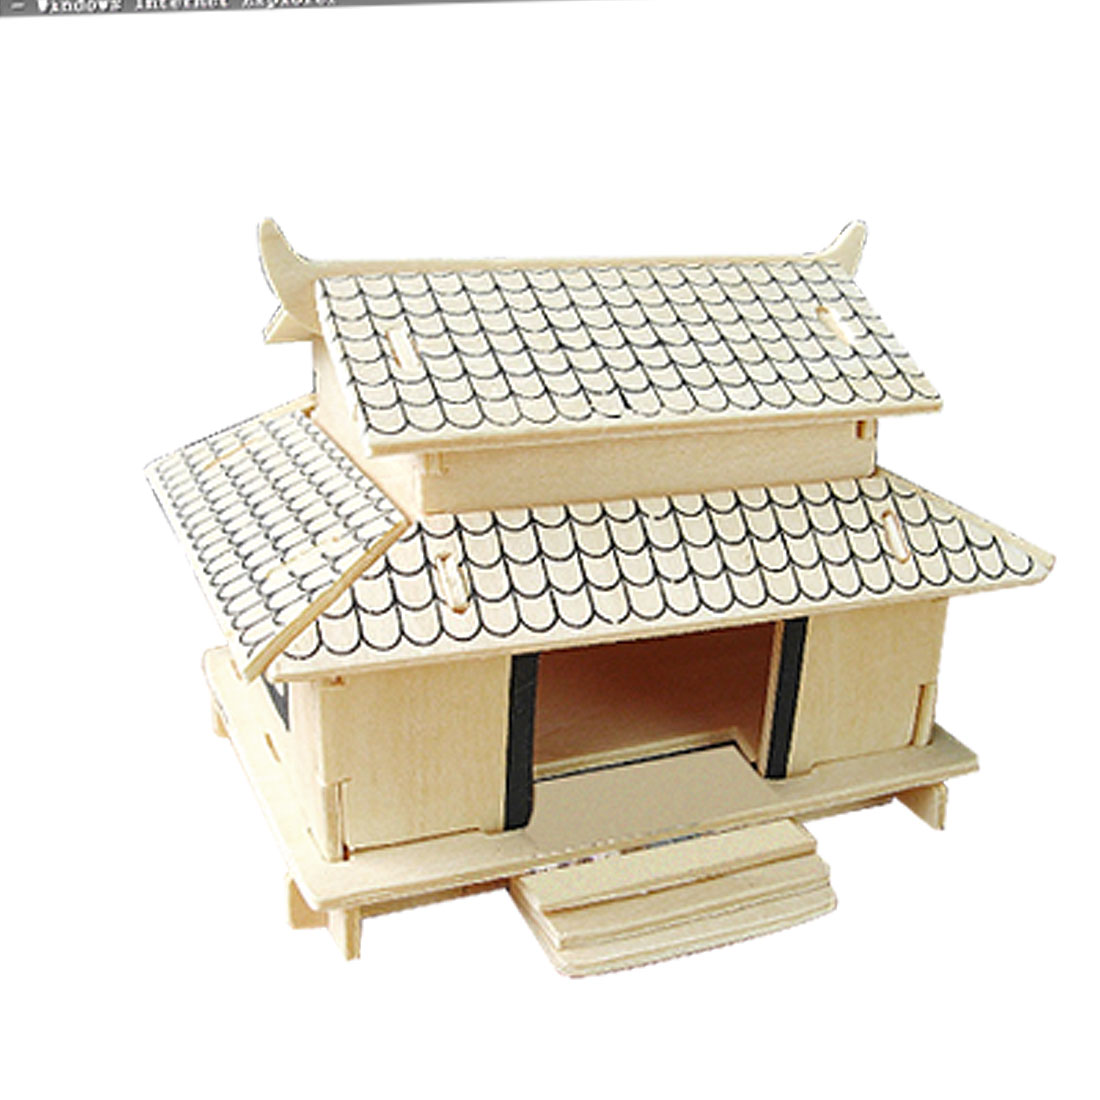 3D Japanese House Model Woodcraft Construction Kit Puzzle Toy